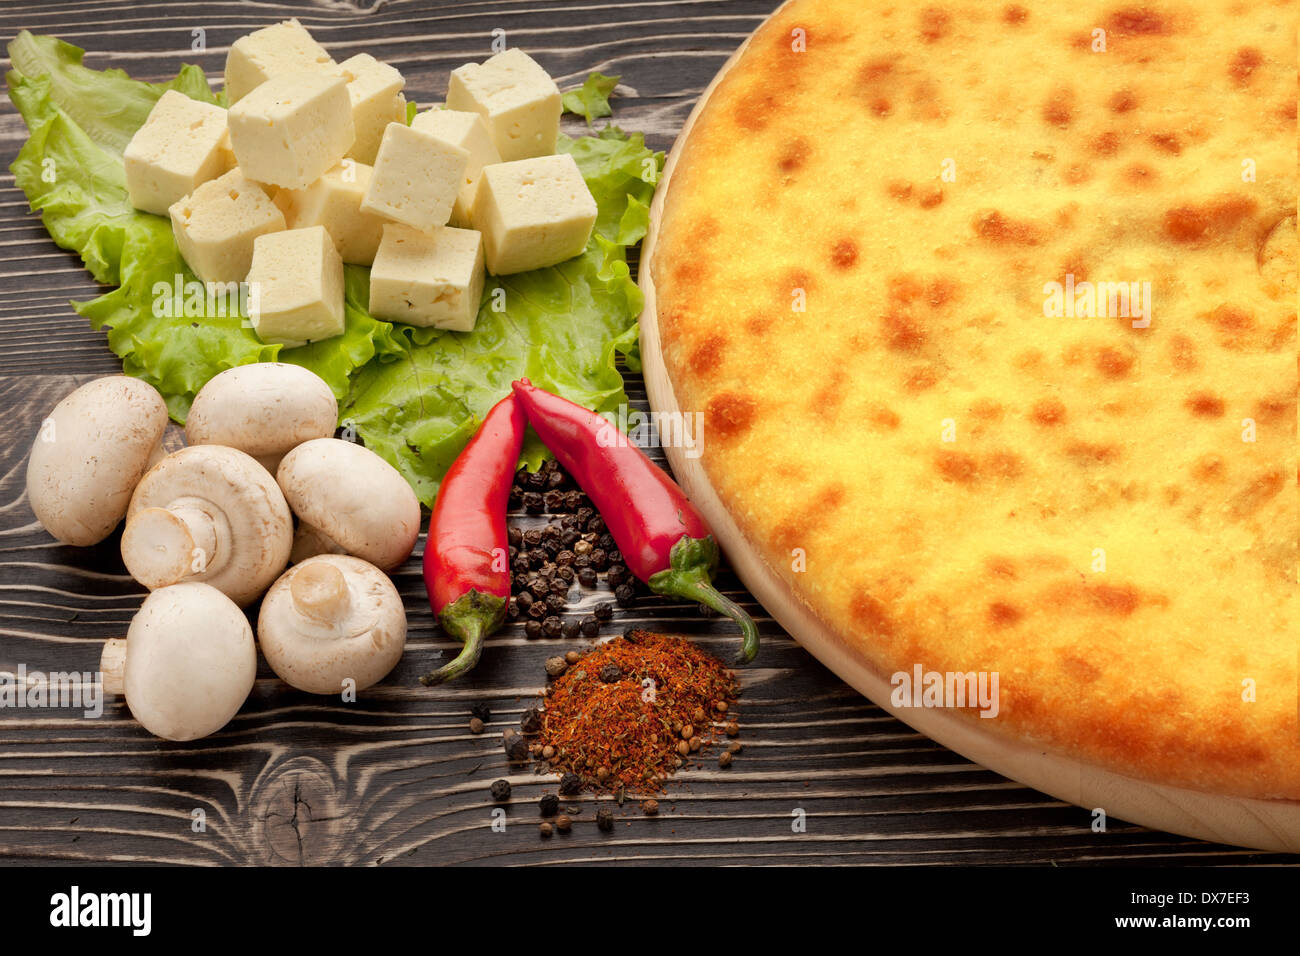 Ossetian cuisine. Kozodjin meat pie and vegetables on wood. - Stock Image